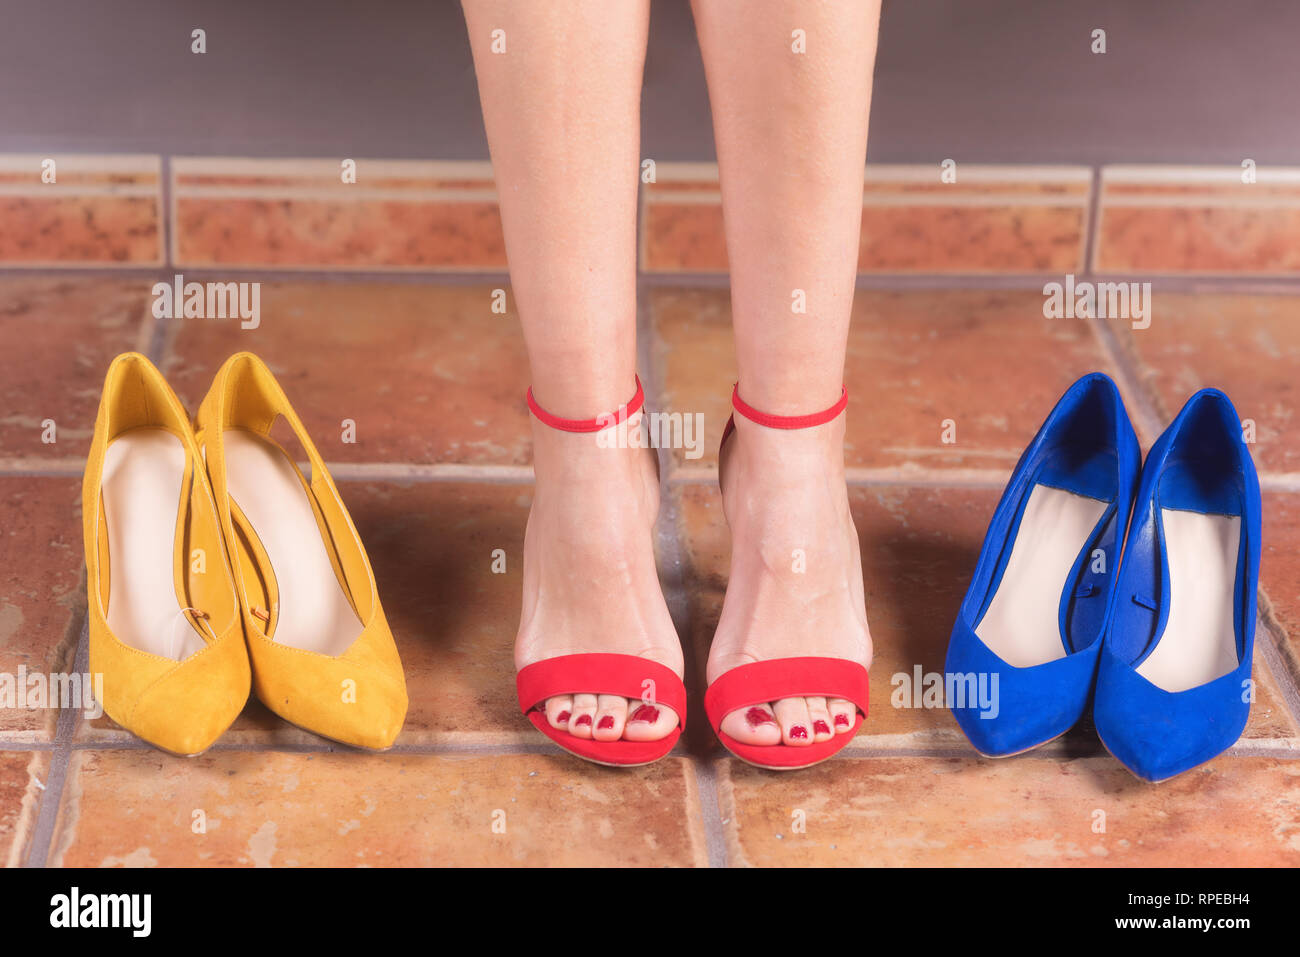 7f081efa45d Lady Trying Shoe Imágenes De Stock   Lady Trying Shoe Fotos De Stock ...